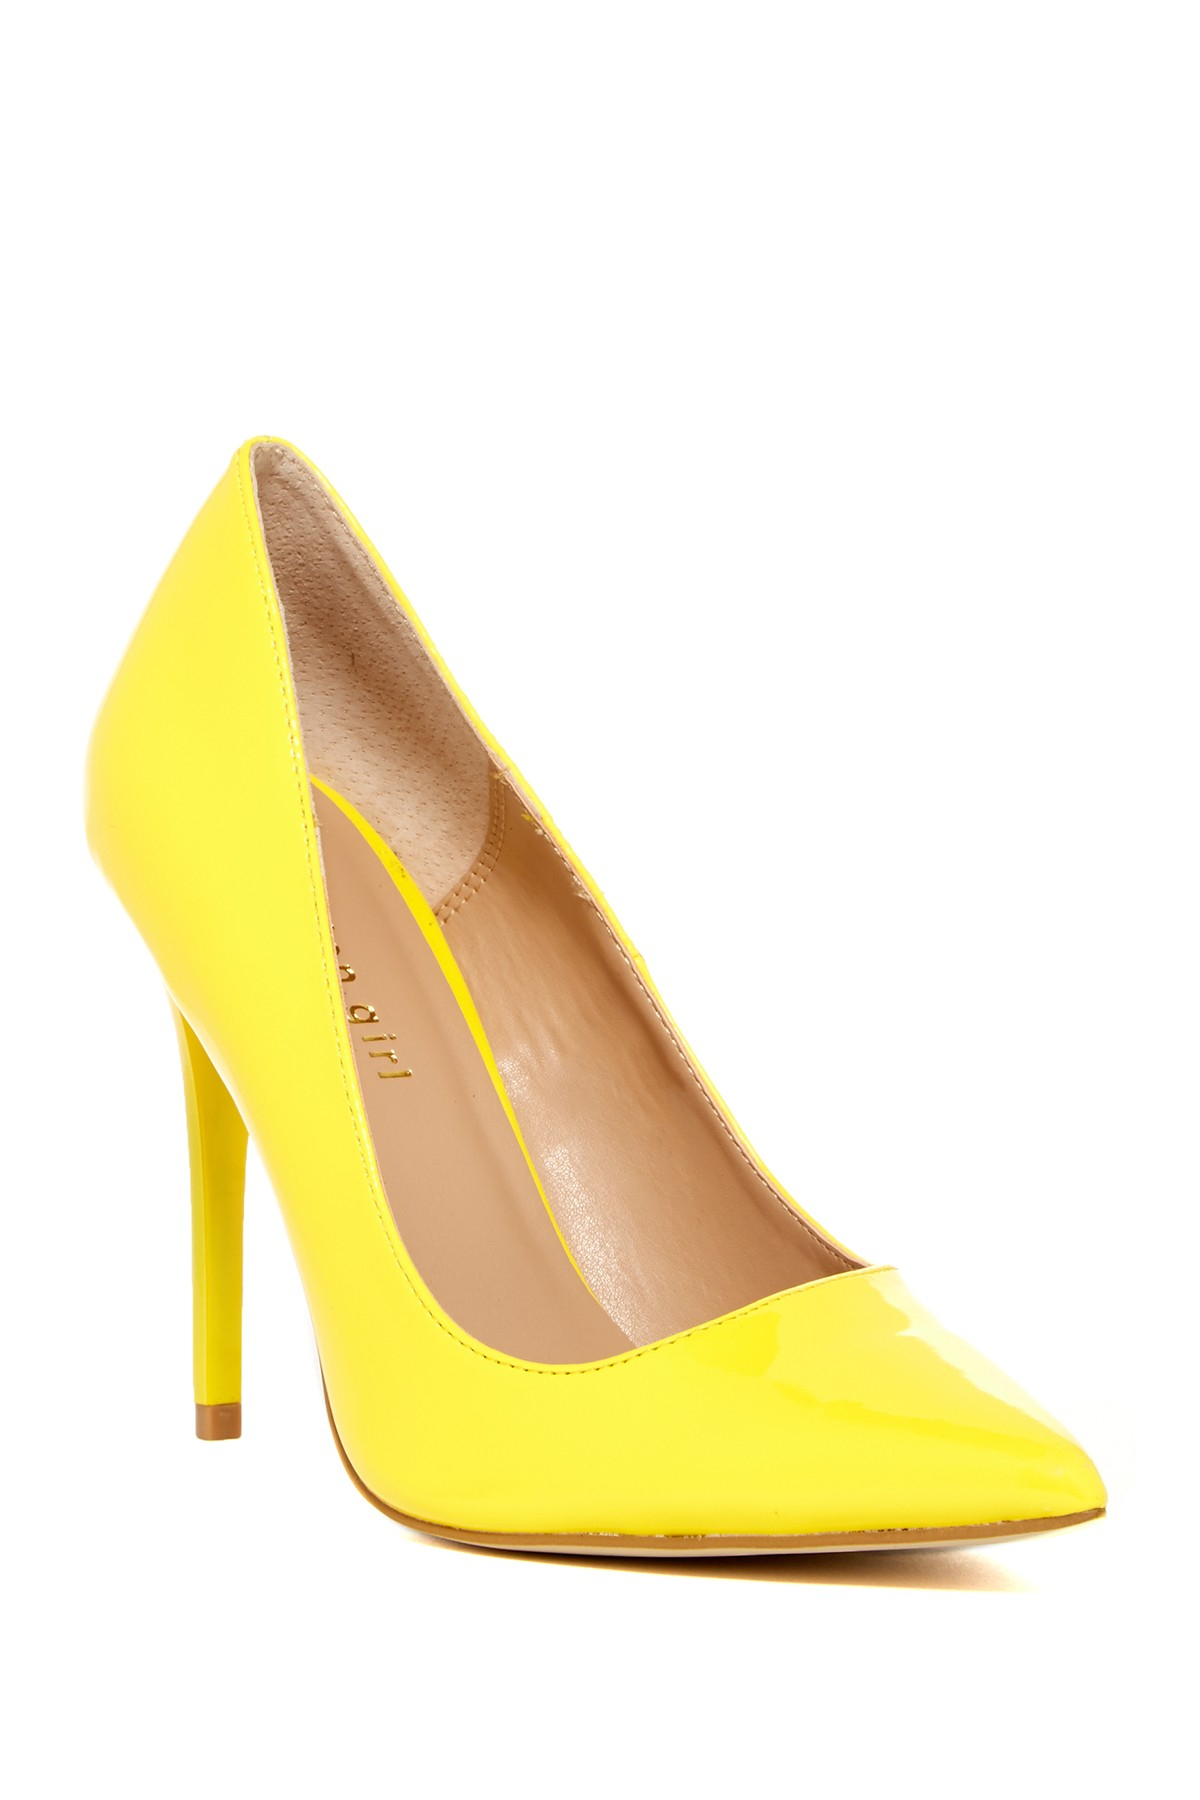 Gallery. Previously sold at: Nordstrom Rack · Women's Yellow Heels